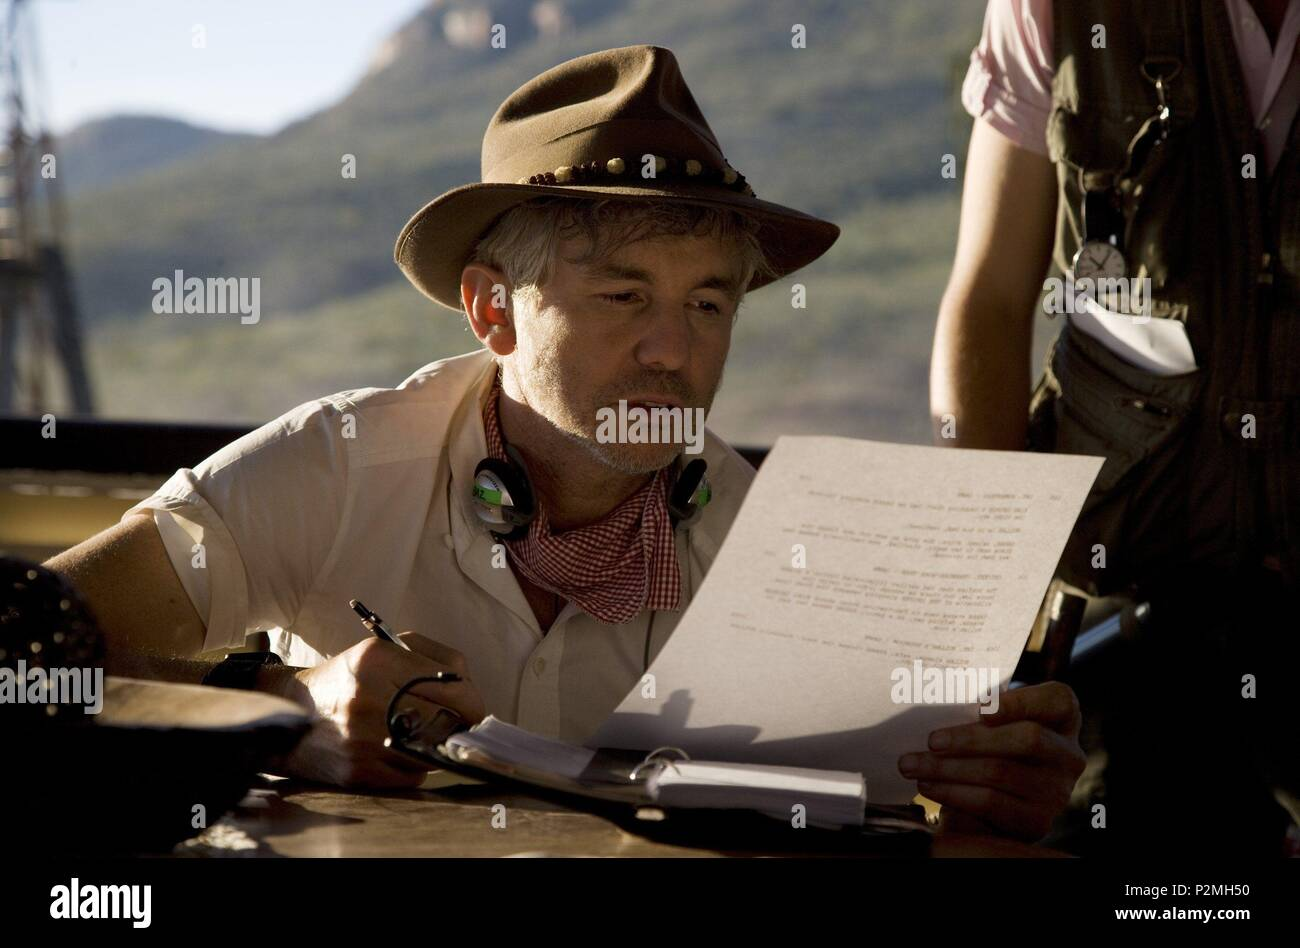 Australia Film High Resolution Stock Photography and Images - Alamy